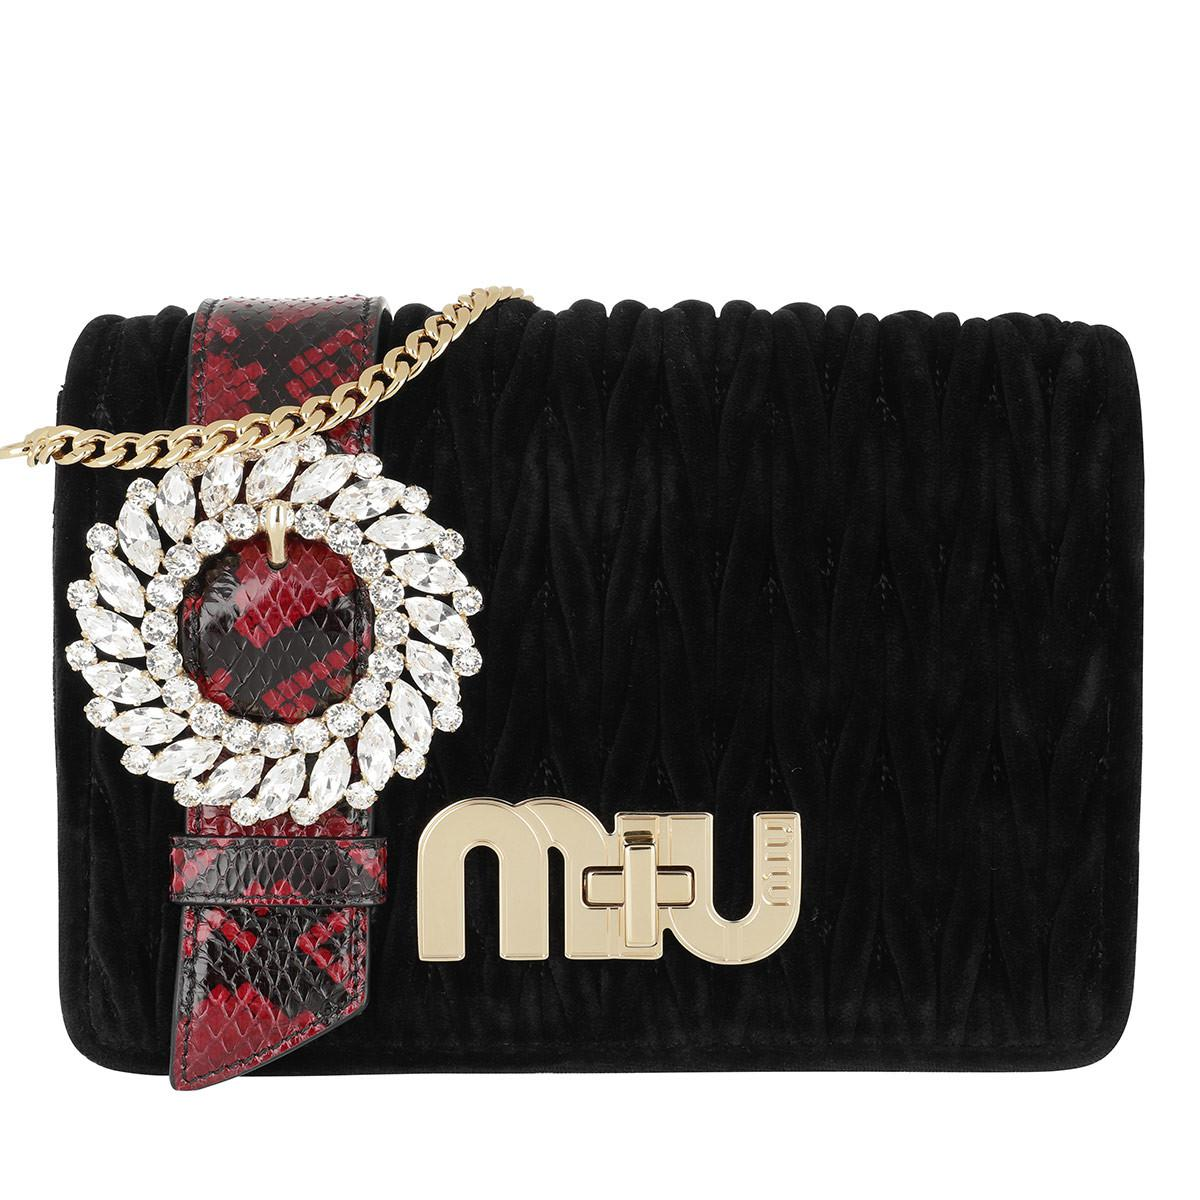 35f1c393977 Miu Miu My Miu Matelassé Velvet Group Black red in Black - Lyst